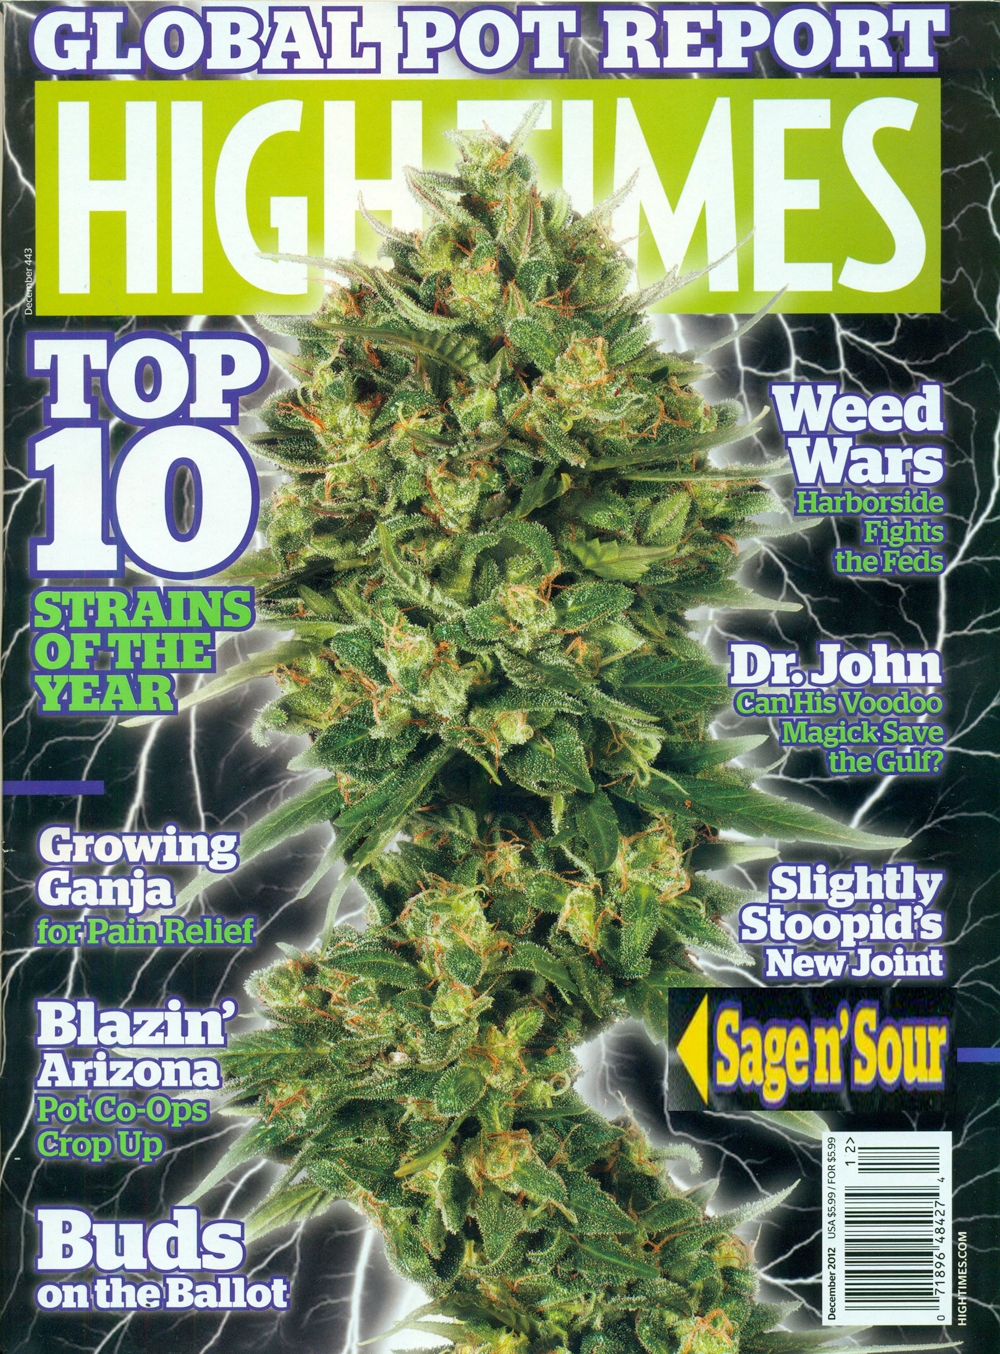 Hightimes-top-10-strains-2012-front-printable-cover-Sage-and-Sour.jpg